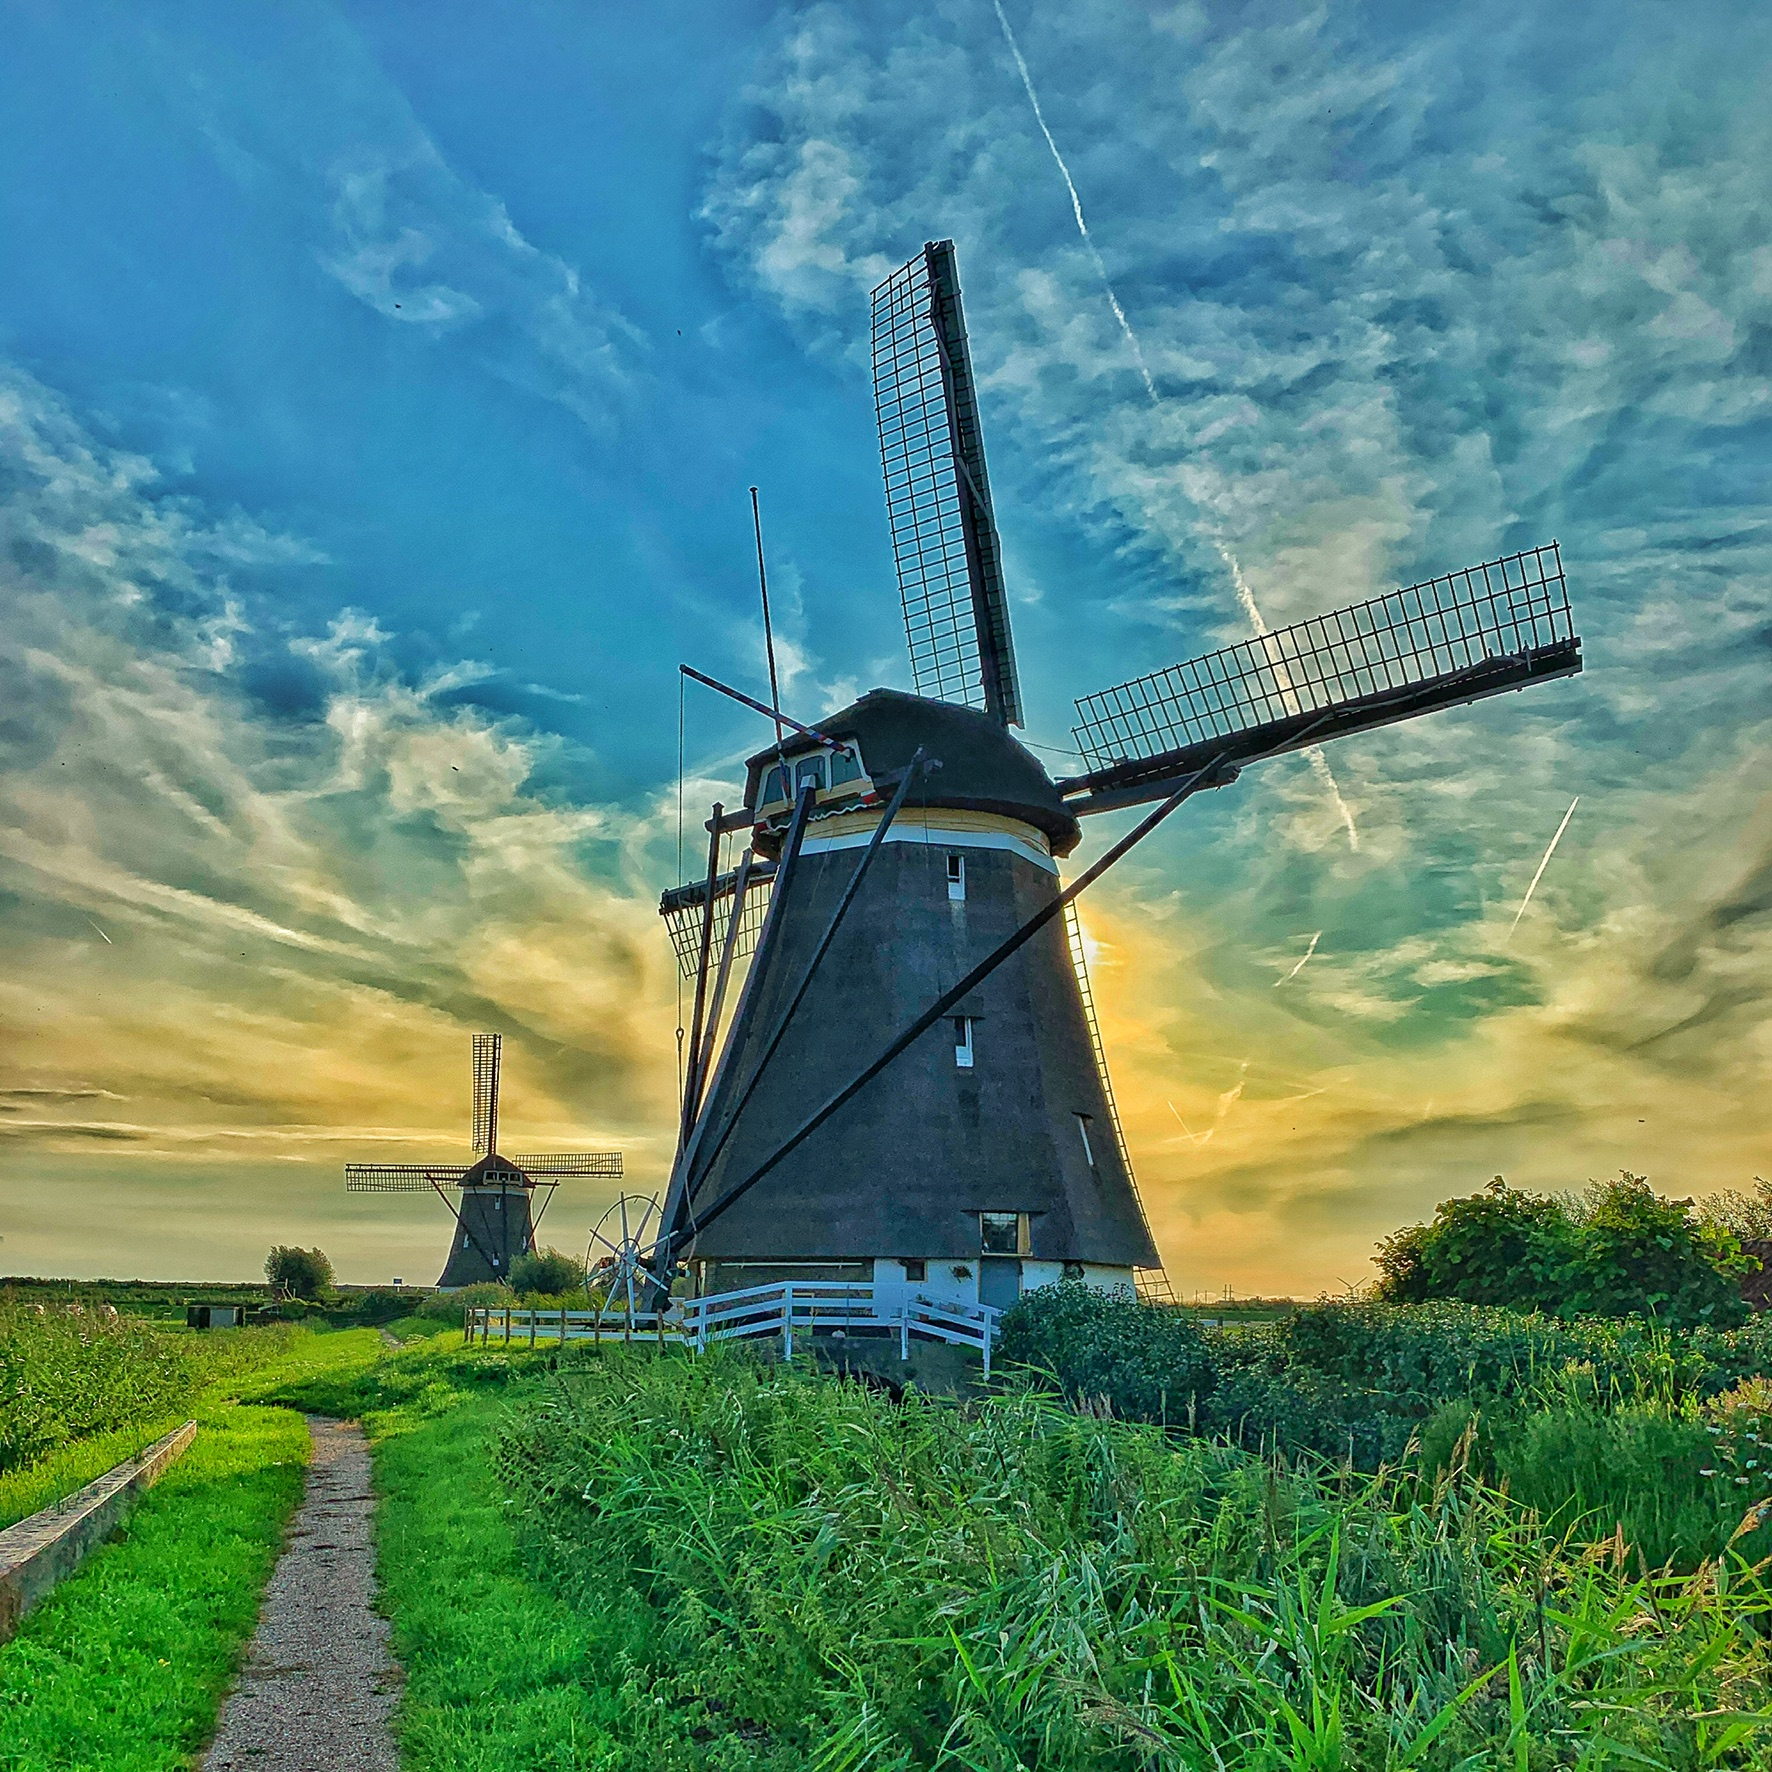 Two of the Windmills at Sevenuizen